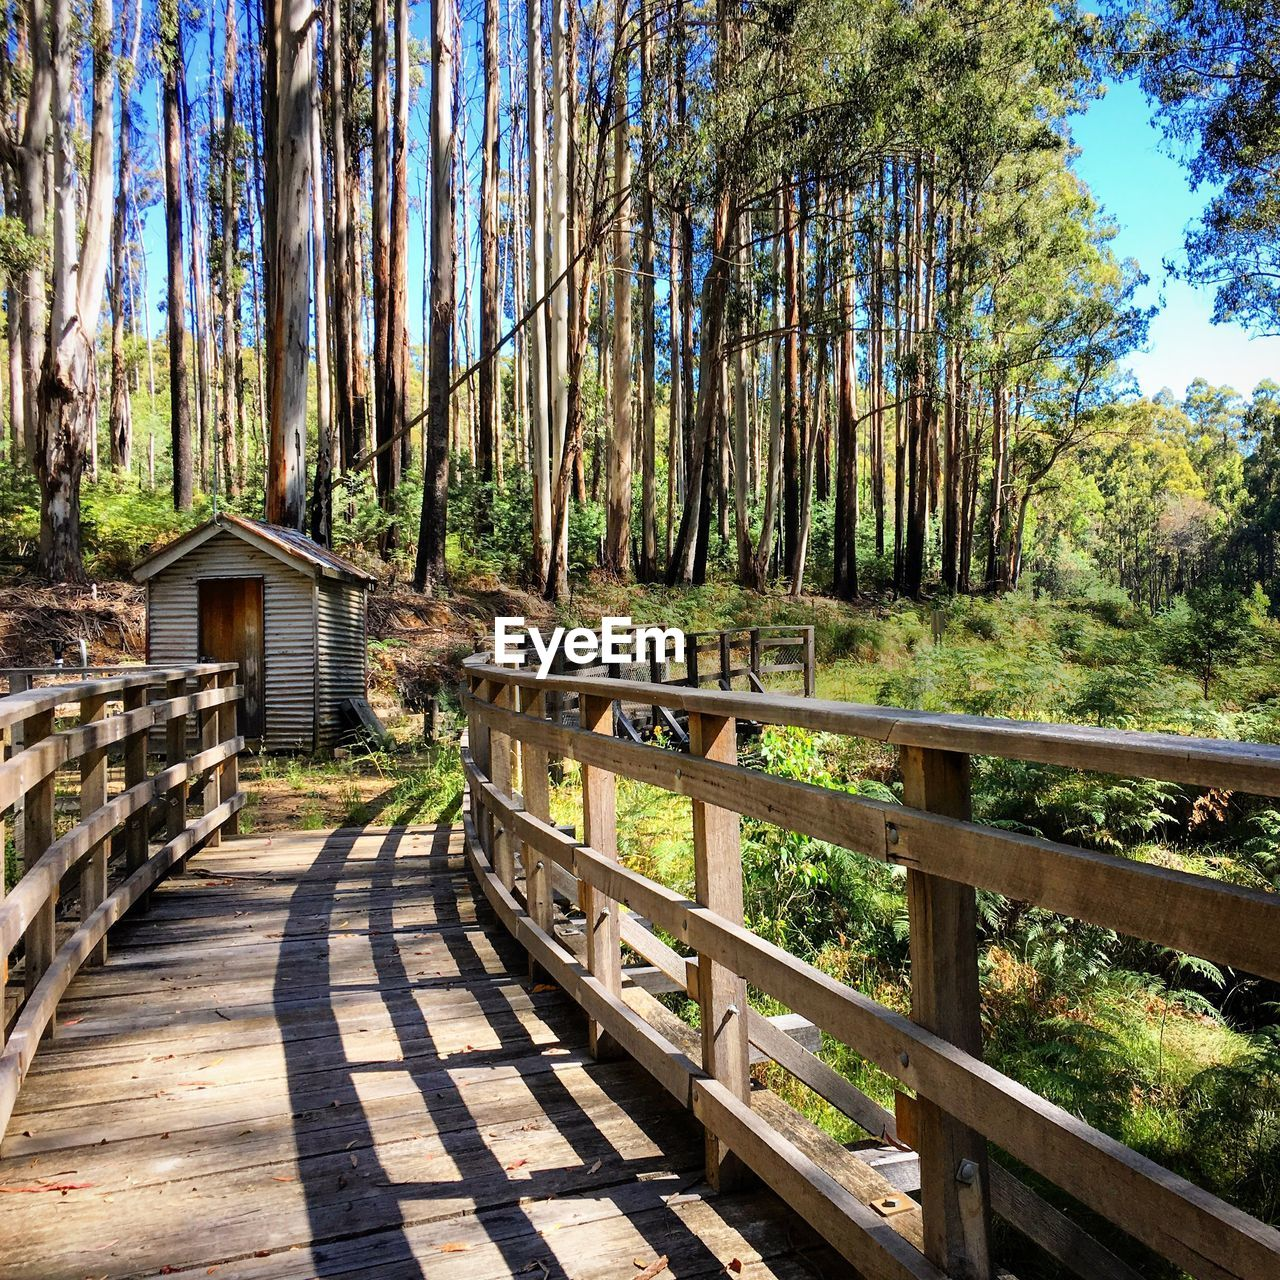 tree, plant, forest, nature, architecture, railing, land, tranquility, day, no people, built structure, wood - material, tranquil scene, sunlight, direction, the way forward, footpath, woodland, wood, shadow, outdoors, footbridge